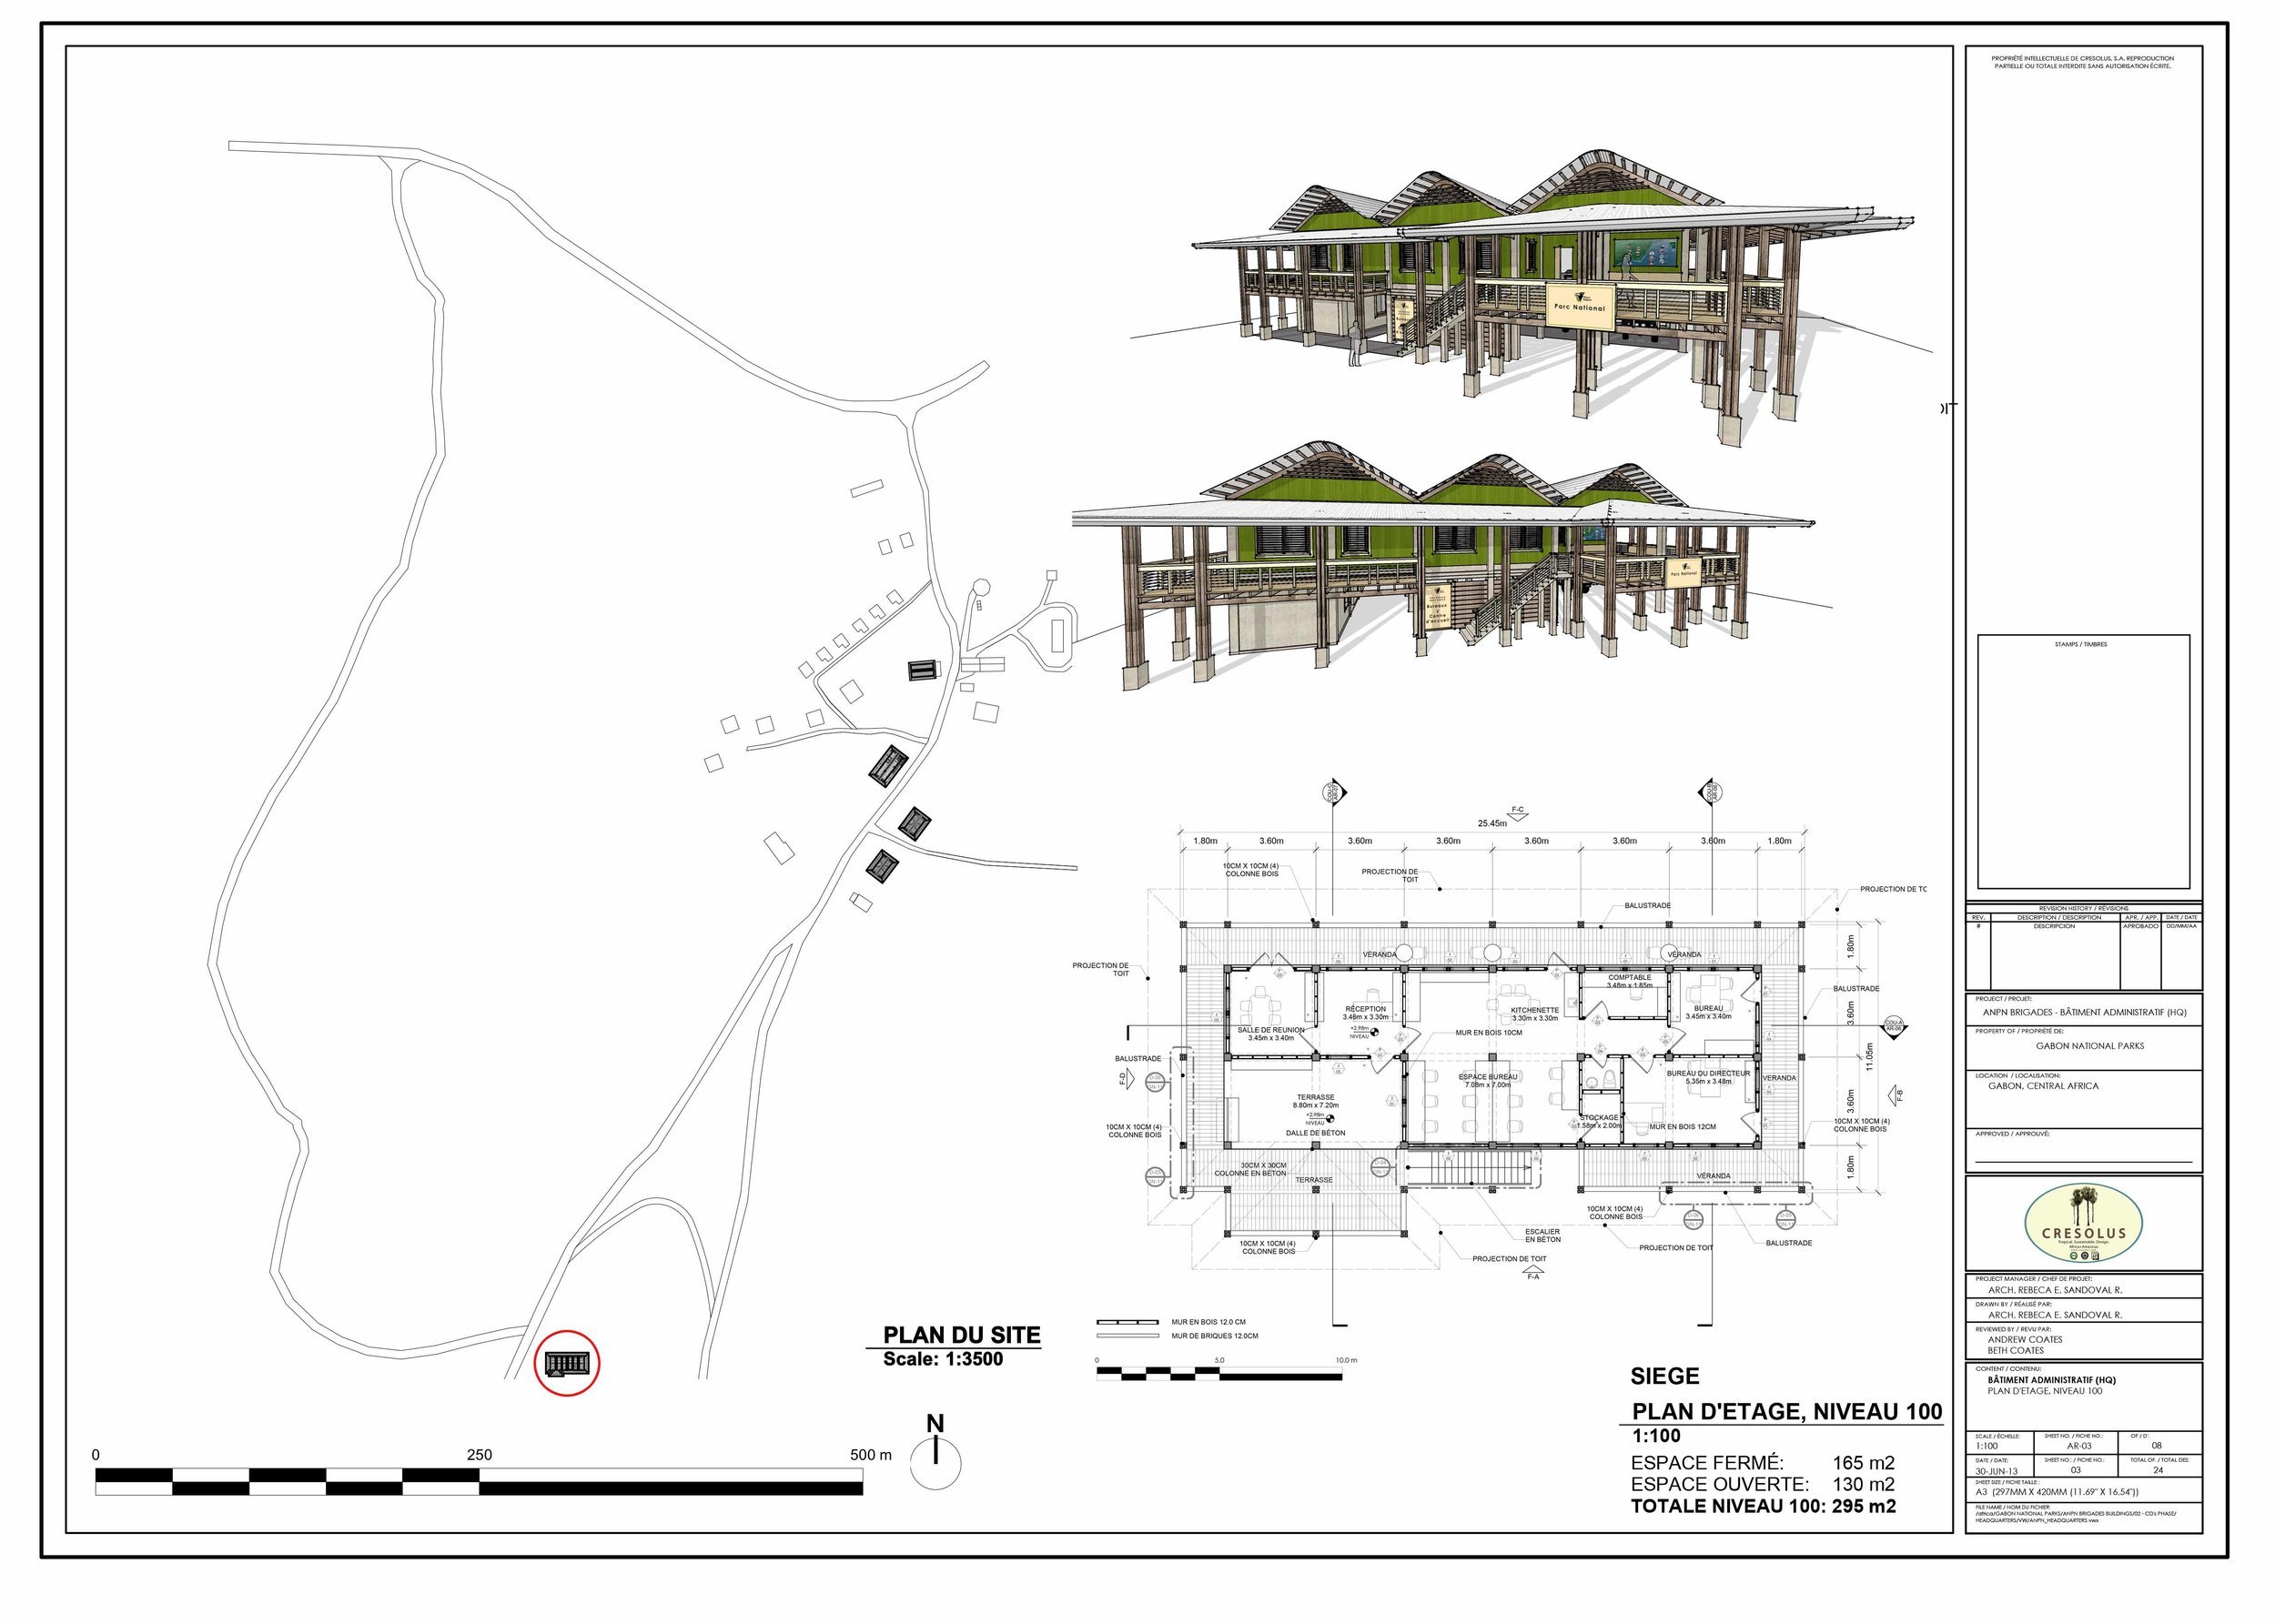 ANPN-LOPE_SITE PLAN-LARGE.jpg